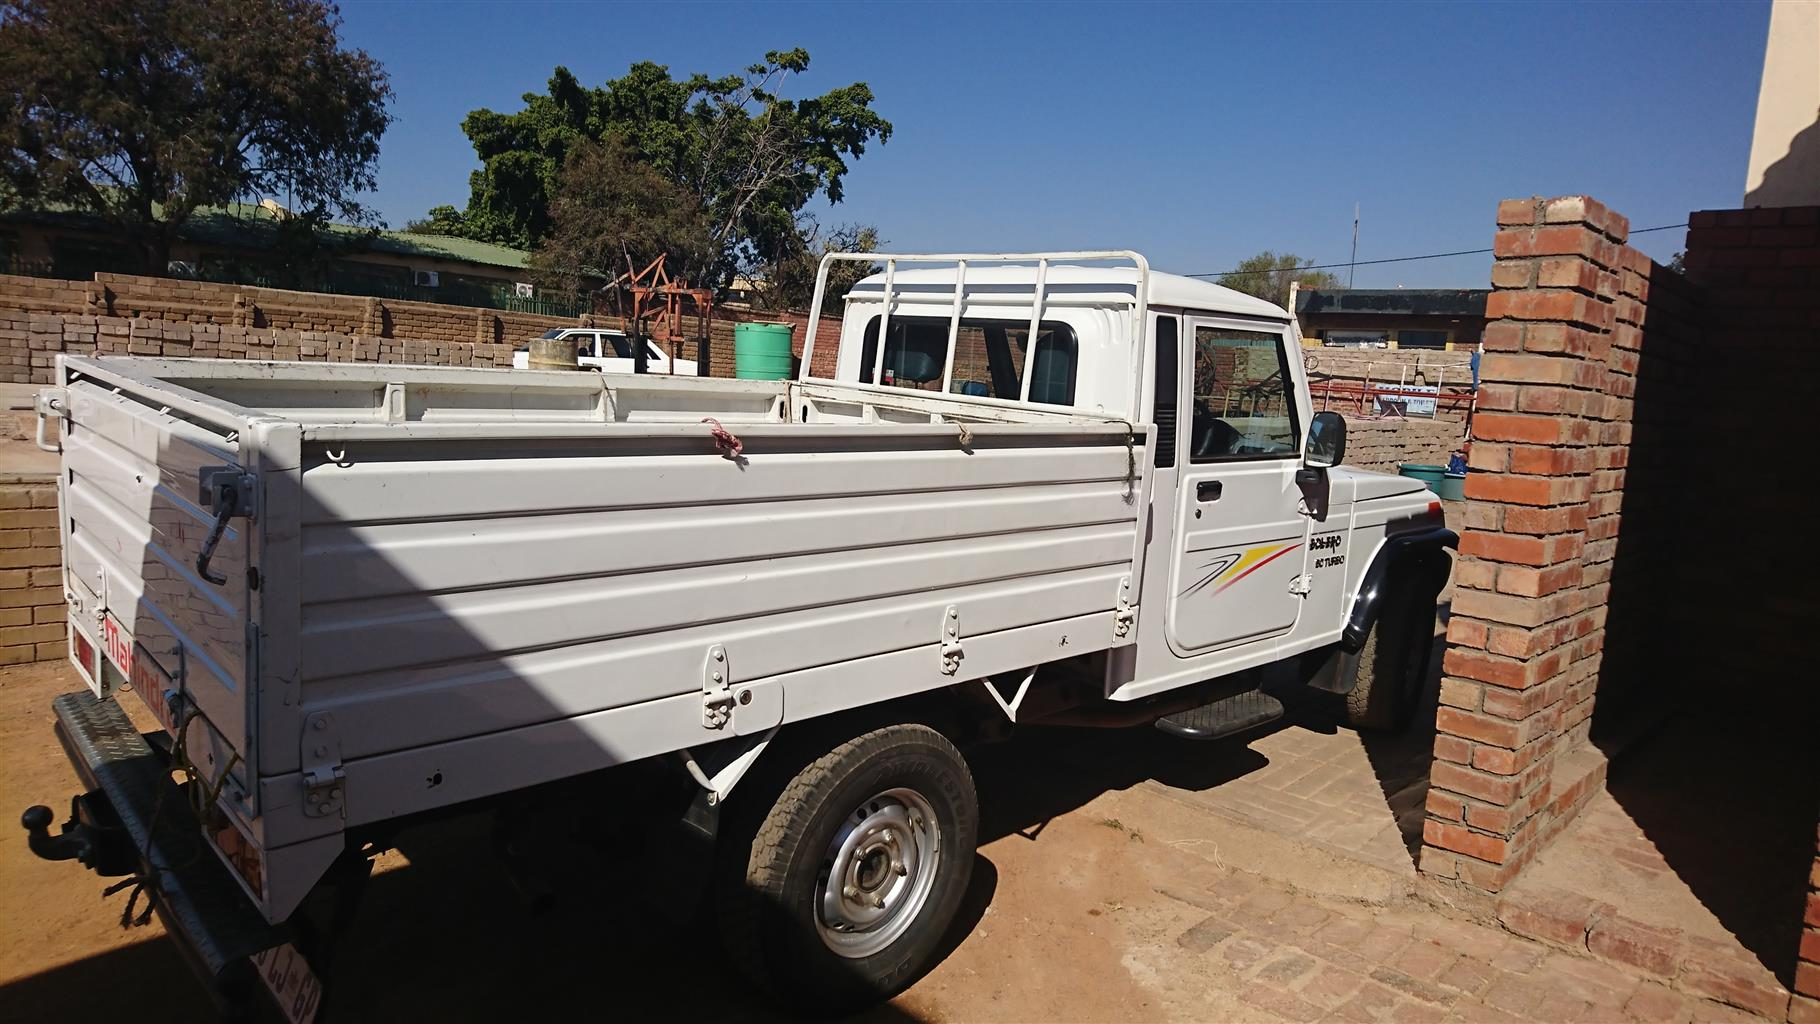 Do you need a delivery bakkie? We can assist you with a Mahindra Bolero to have your goods delivered in and around Pretoria.